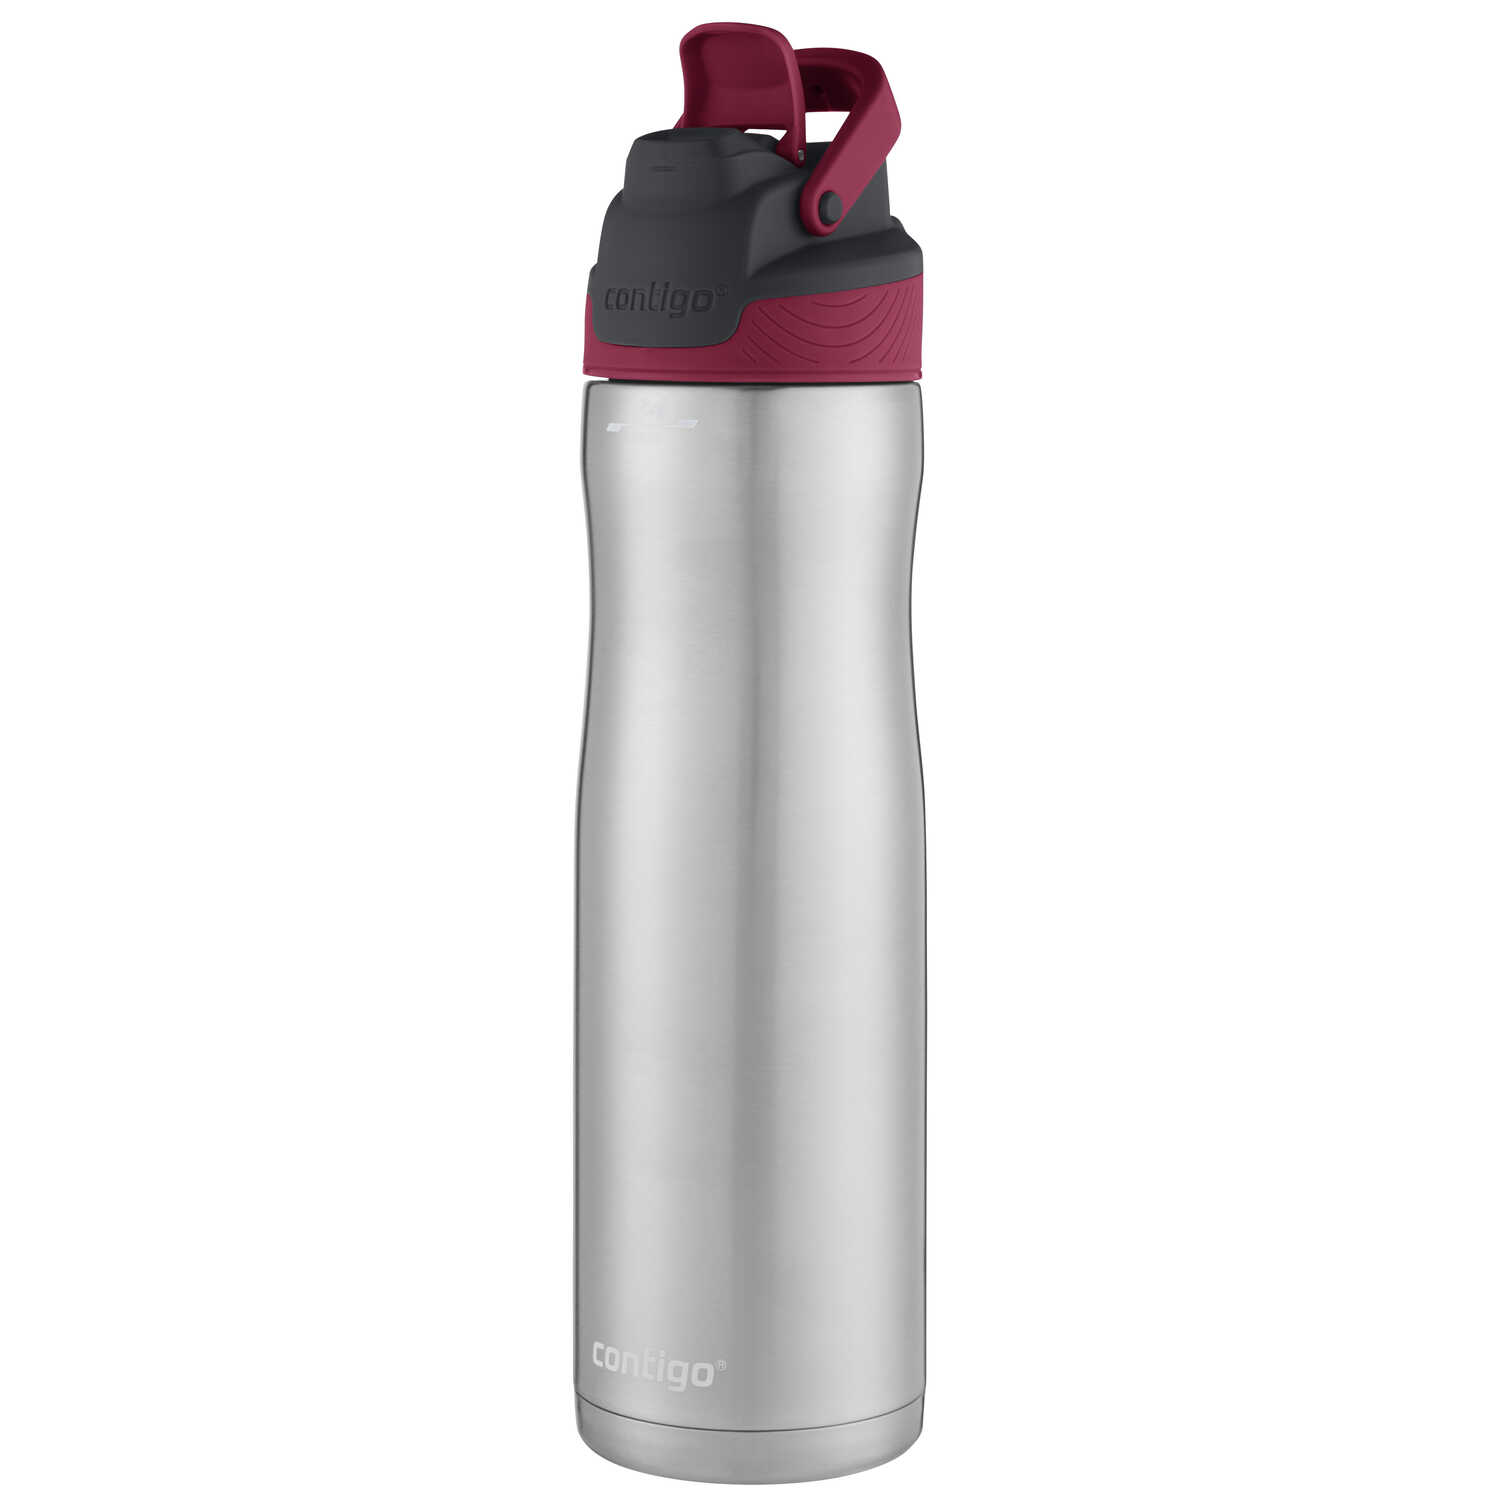 Contigo  AutoSeal Chill  24 oz. Water Bottle  Maroon/Silver